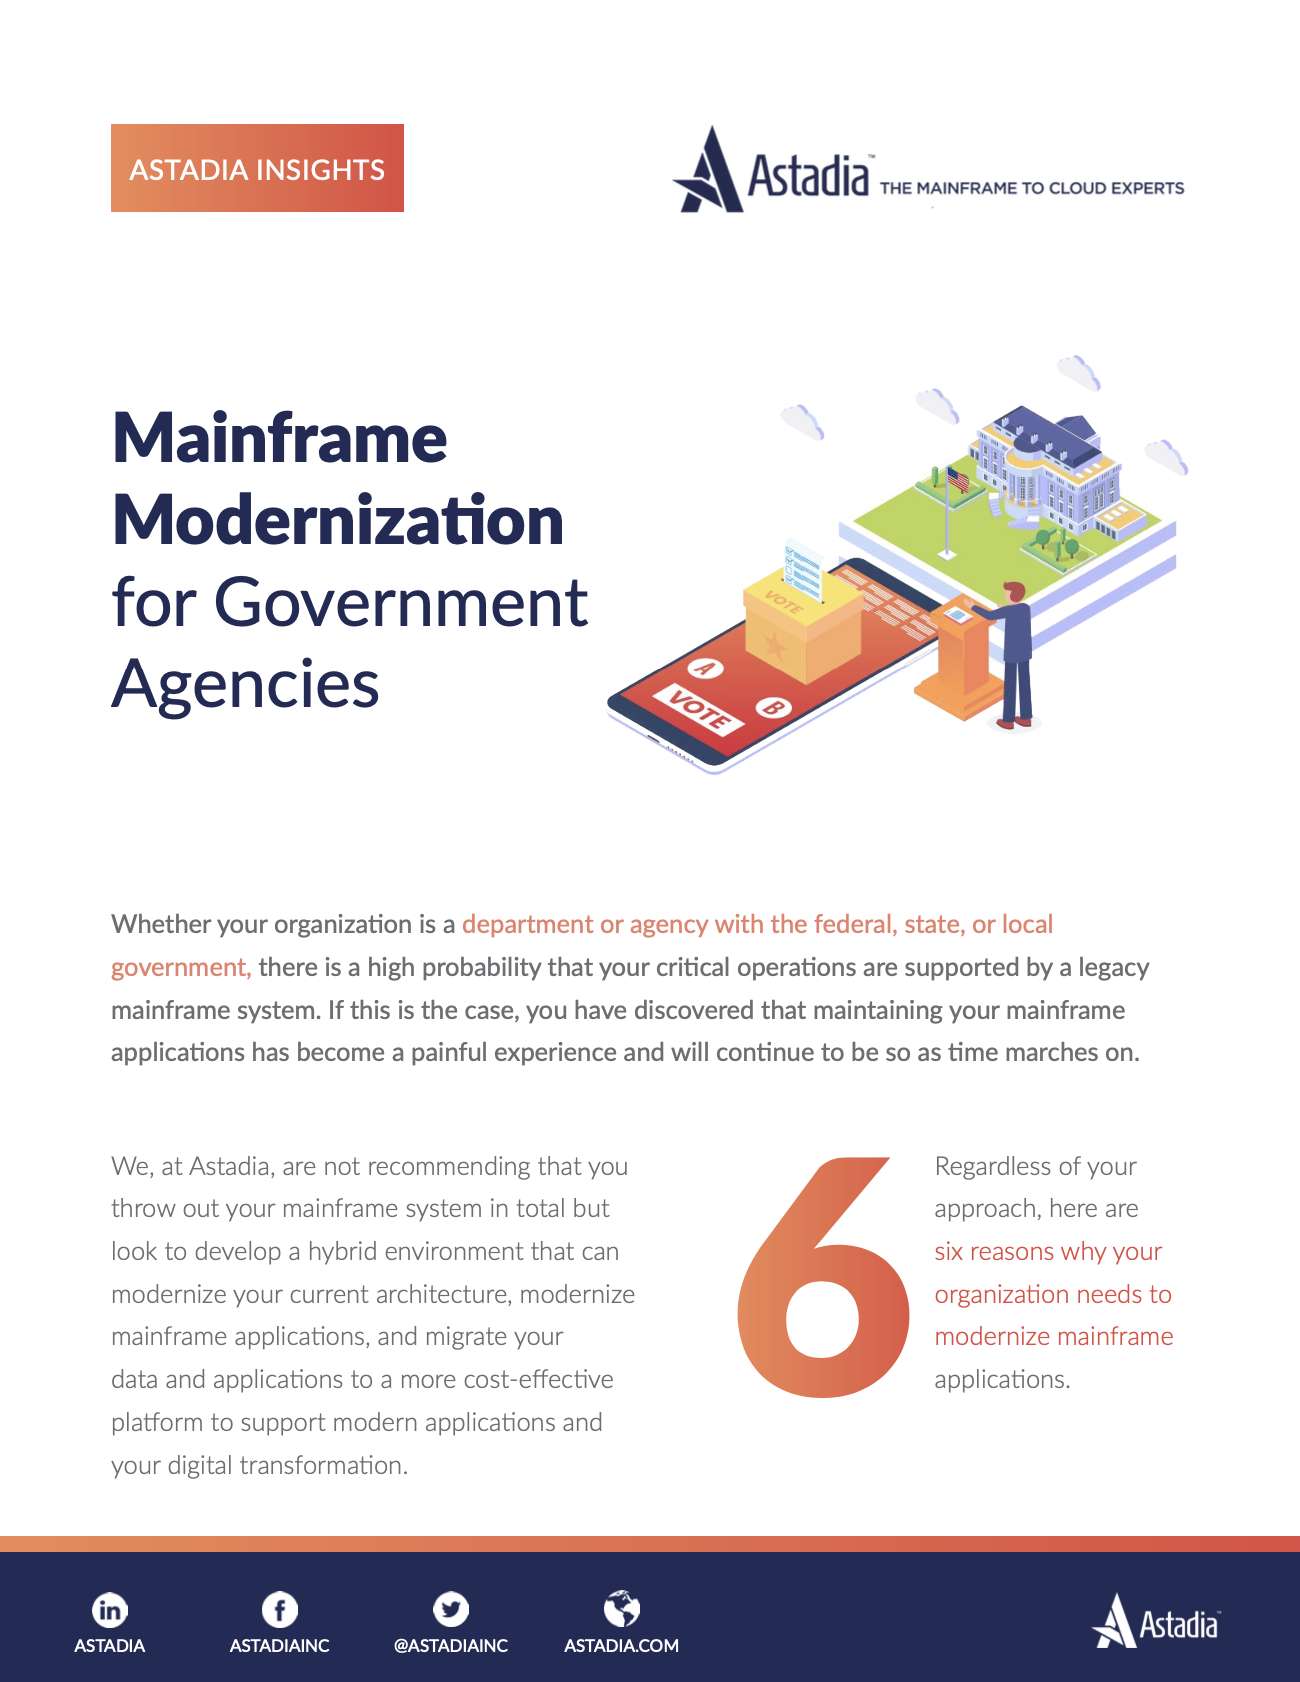 Mainframe Modernization for Government Agencies